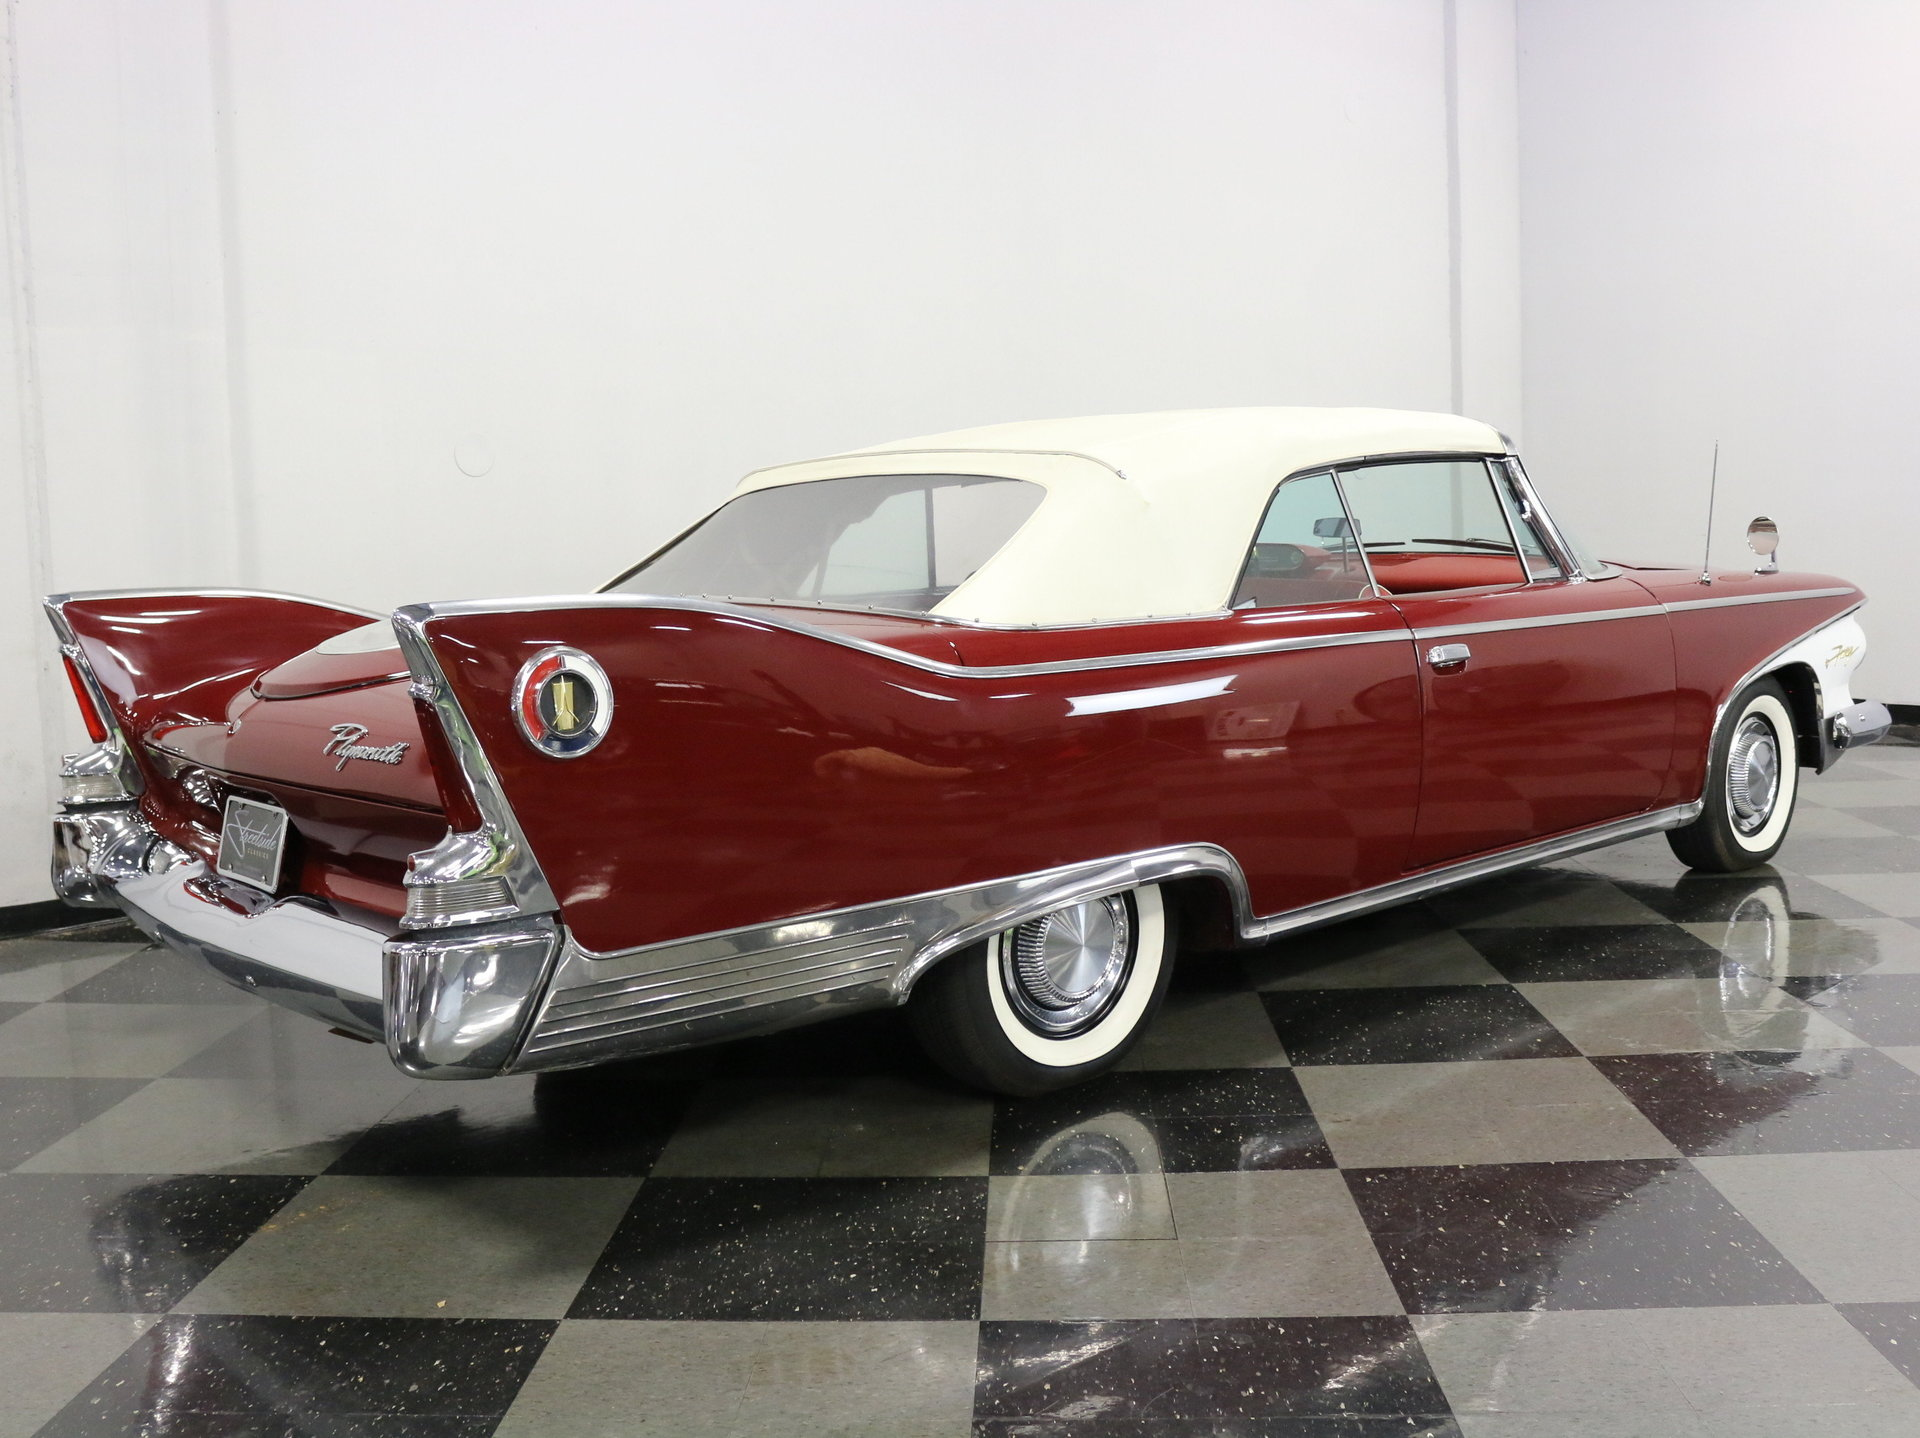 1960 Plymouth Fury Streetside Classics The Nations Trusted Convertible For Sale Spincar View 360